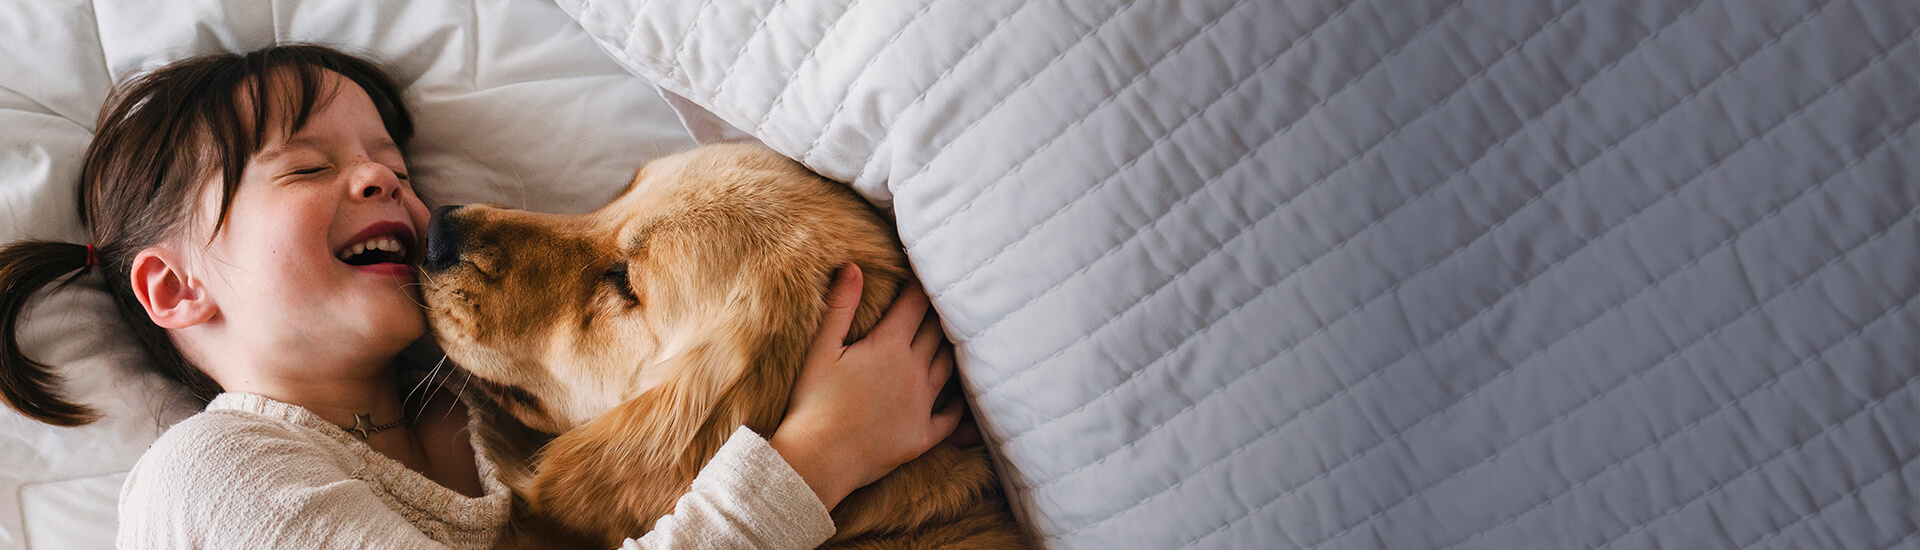 A young girl and her golden retriever dog laying in bed together